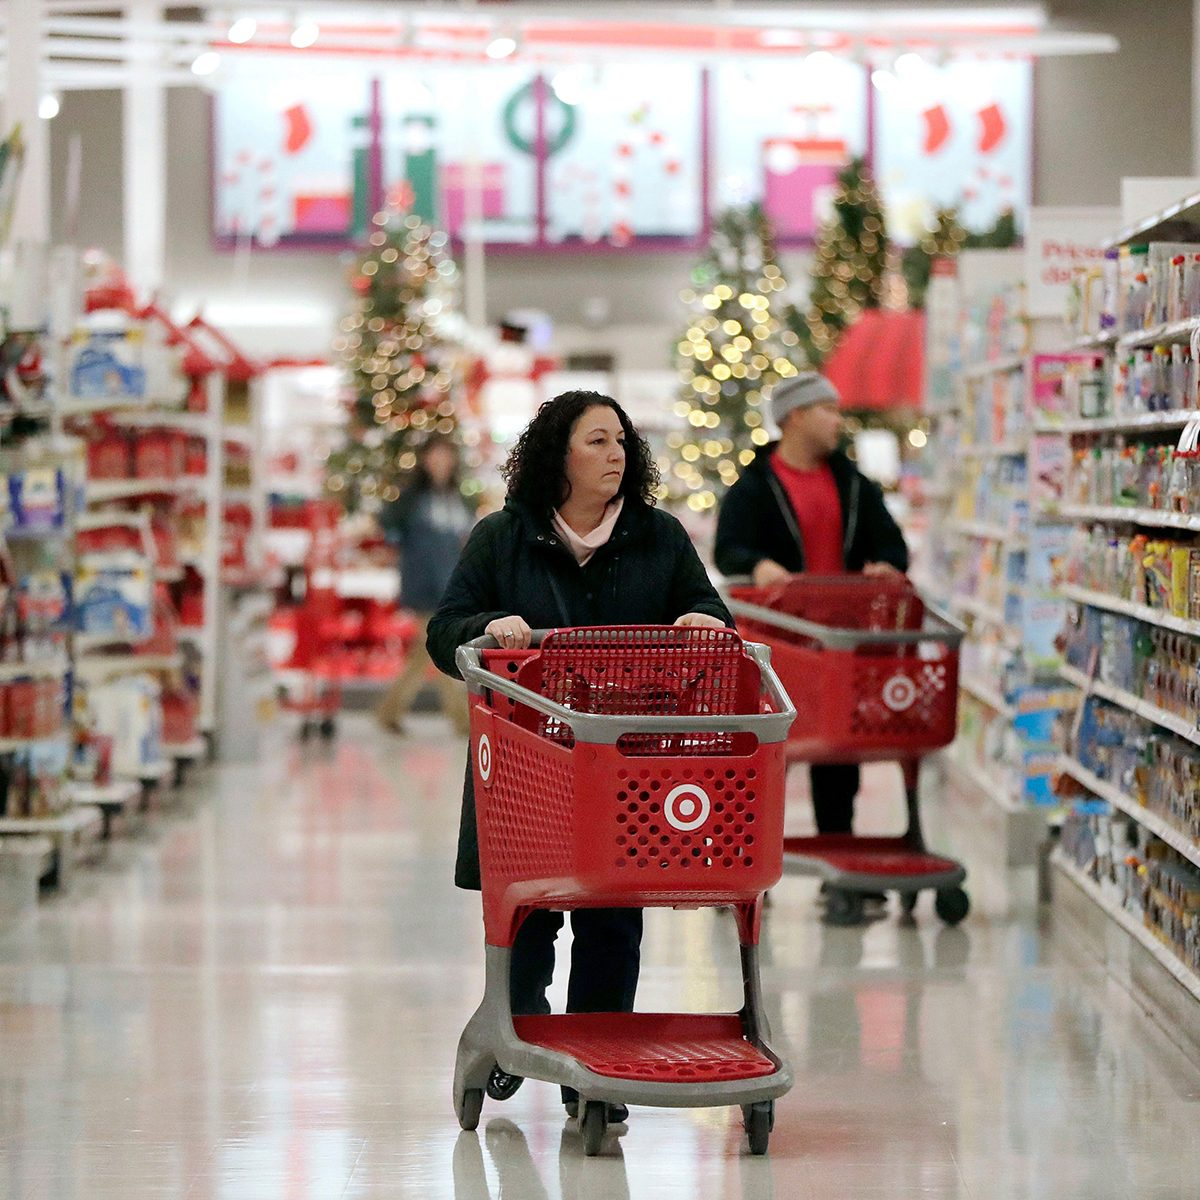 10 Things Target Employees Wish You Knew About Holiday Shopping